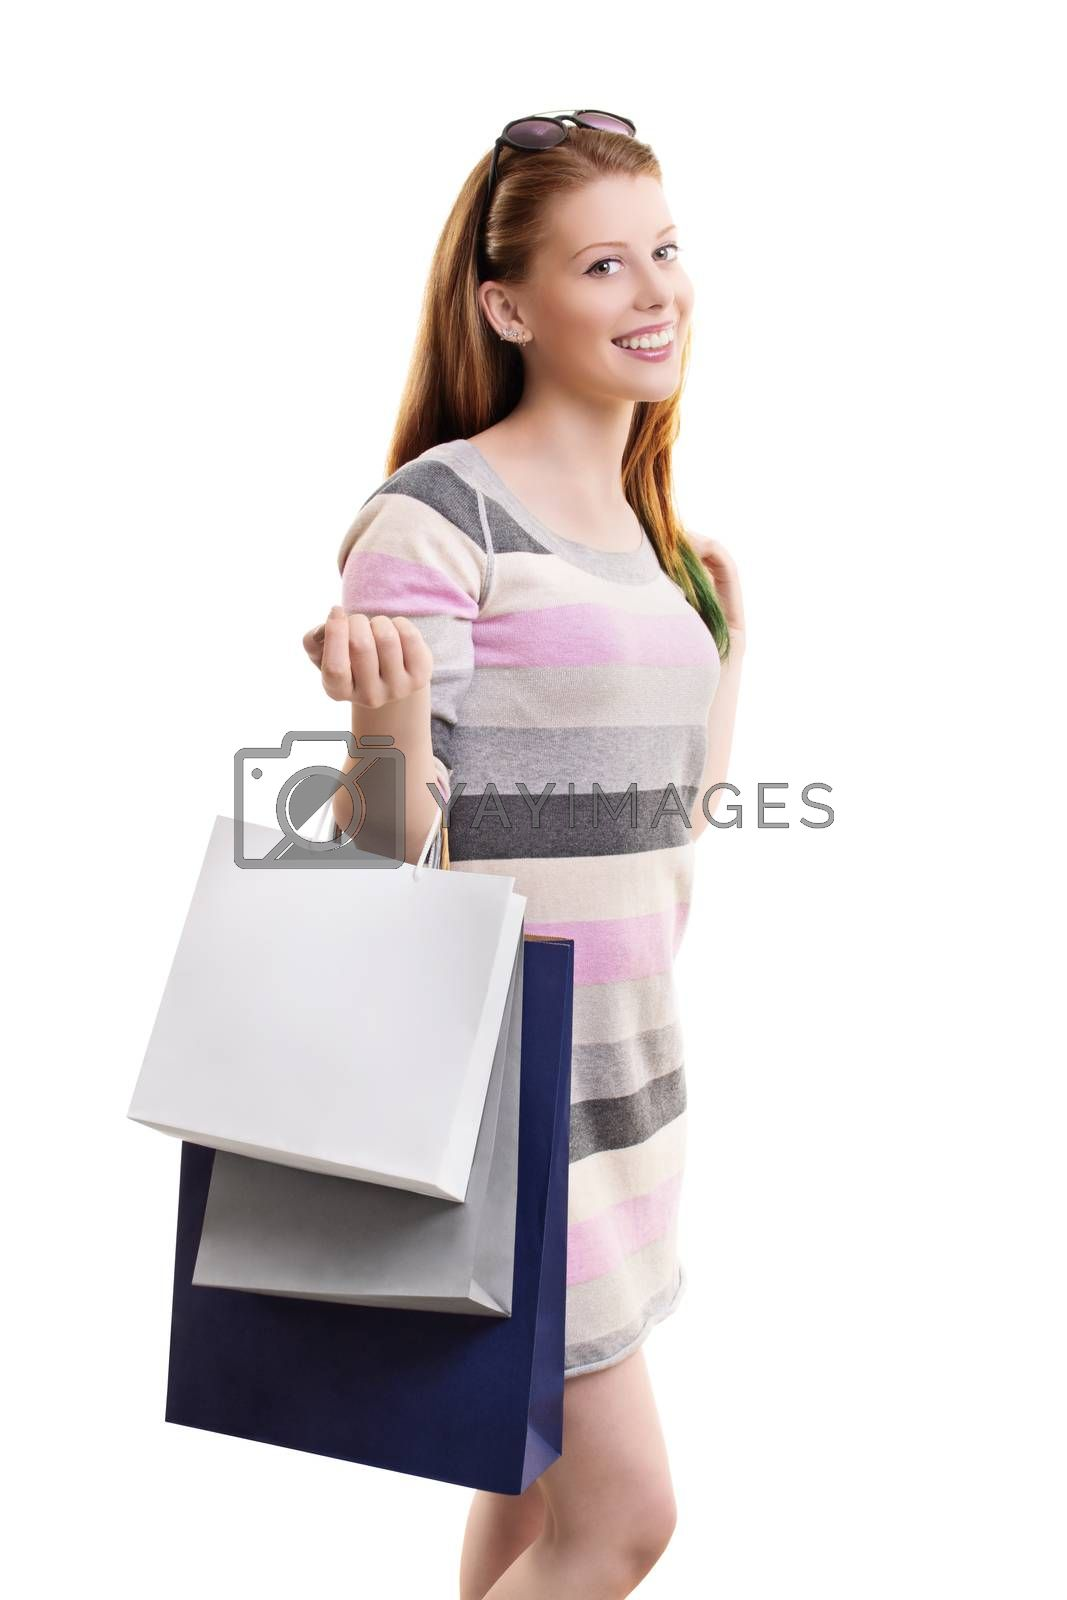 Shopping concept. Portrait of a beautiful smiling young girl in a dress, holding a lot of shopping bags, isolated on white background.